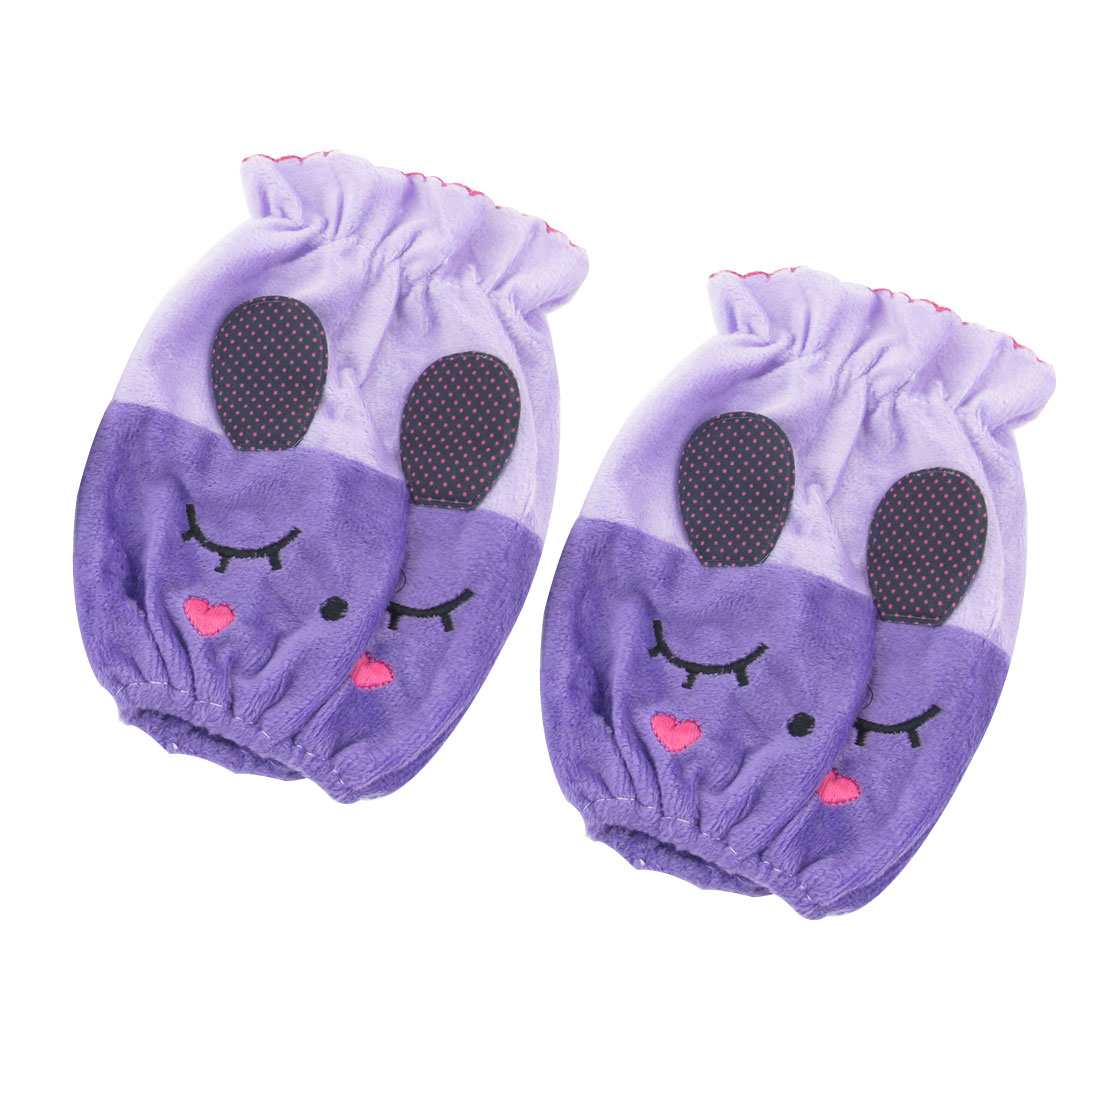 School Students Purple Cute Rabbit Design Stretch Cuff Sleevelet Pair